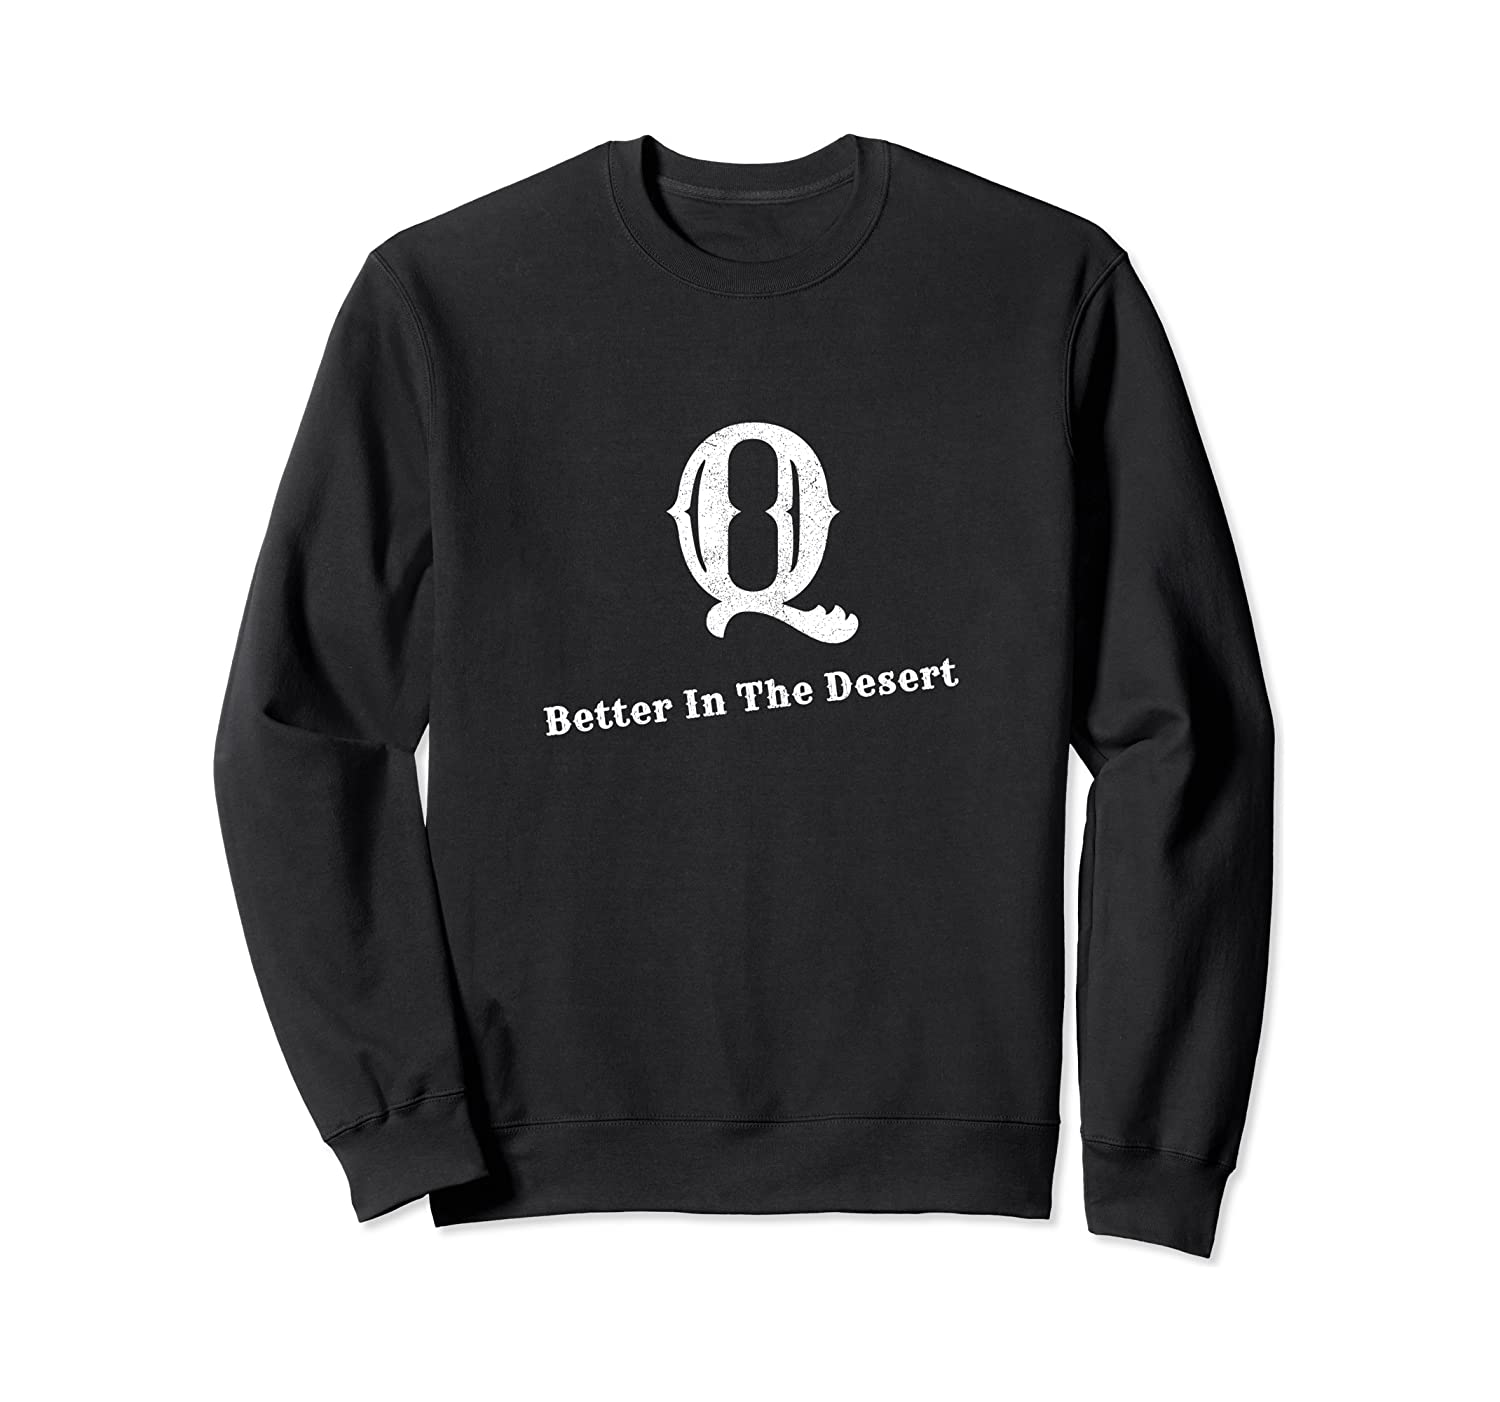 Q Better In The Desert Sweatshirt